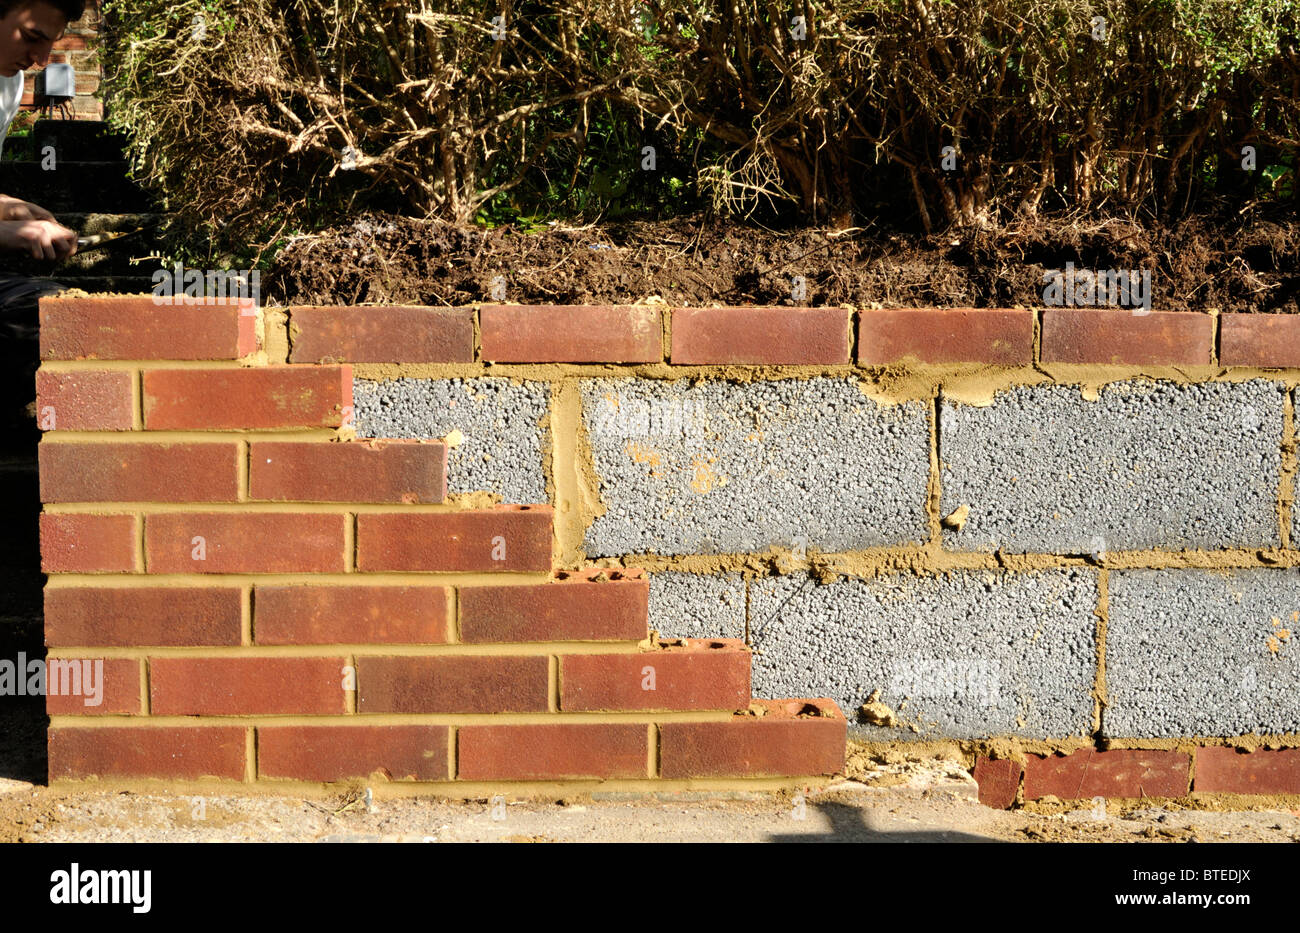 New Garden Wall With Inner Concrete Blocks And Outer Red Bricks. UK.